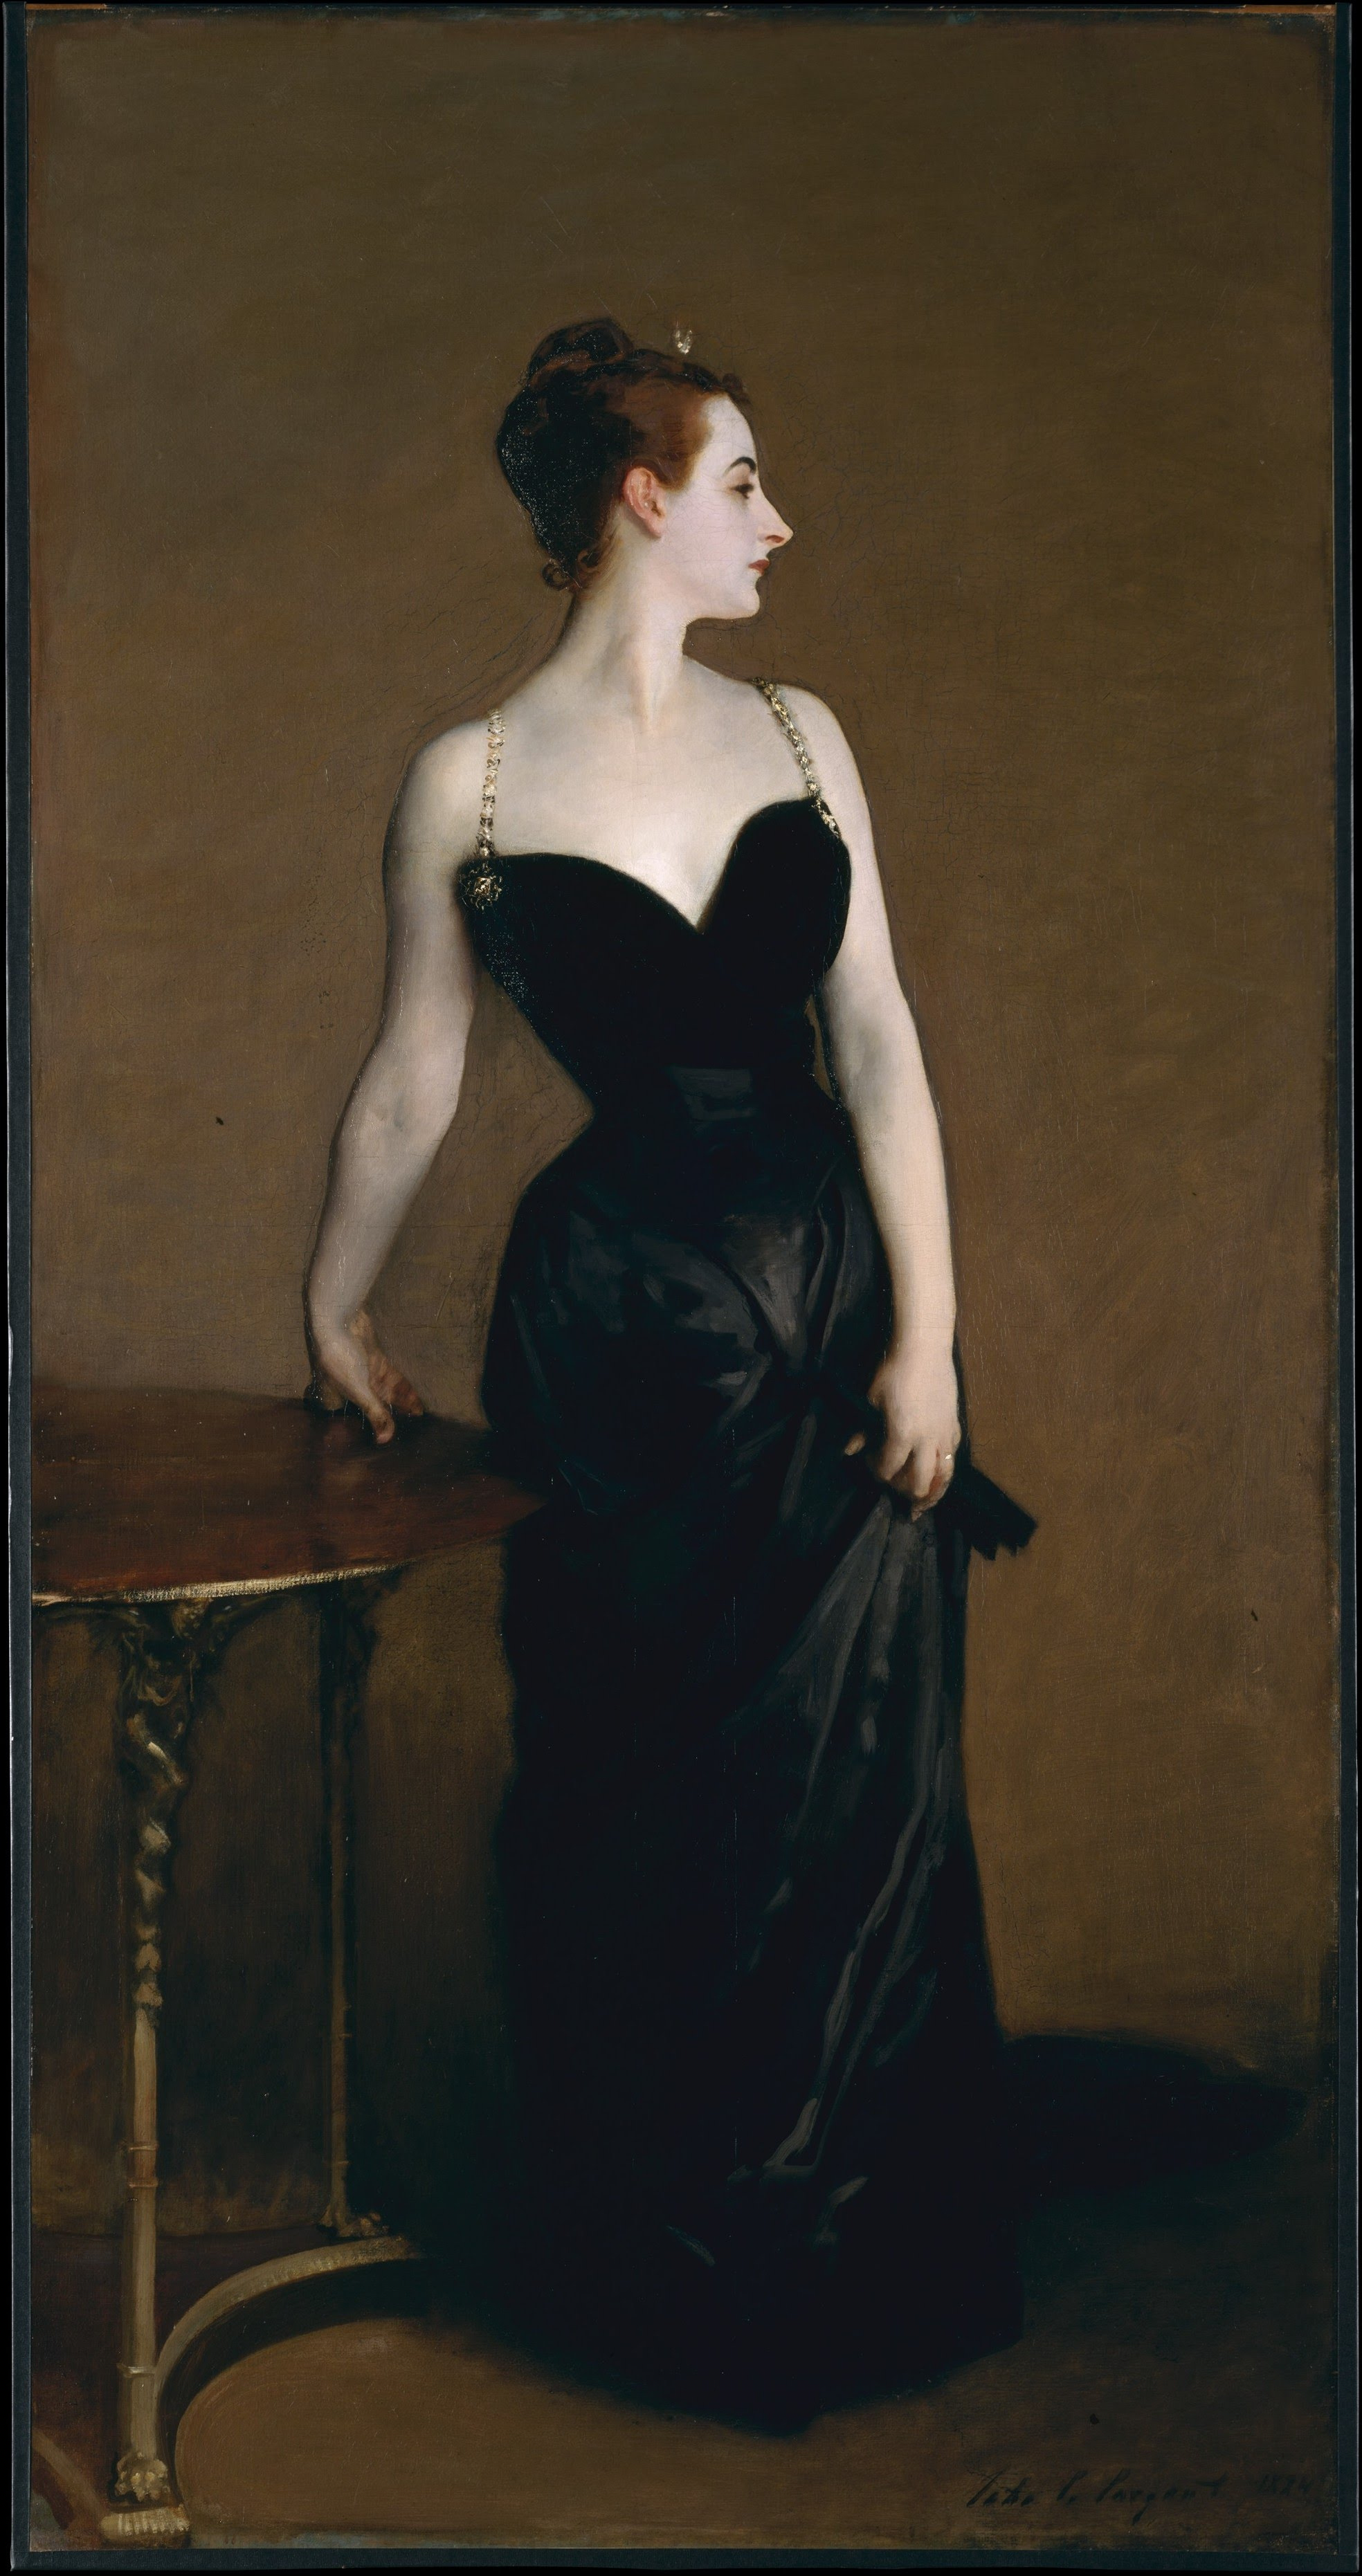 Painting by John Singer Sargent depicting a woman standing and wearing a black dress.